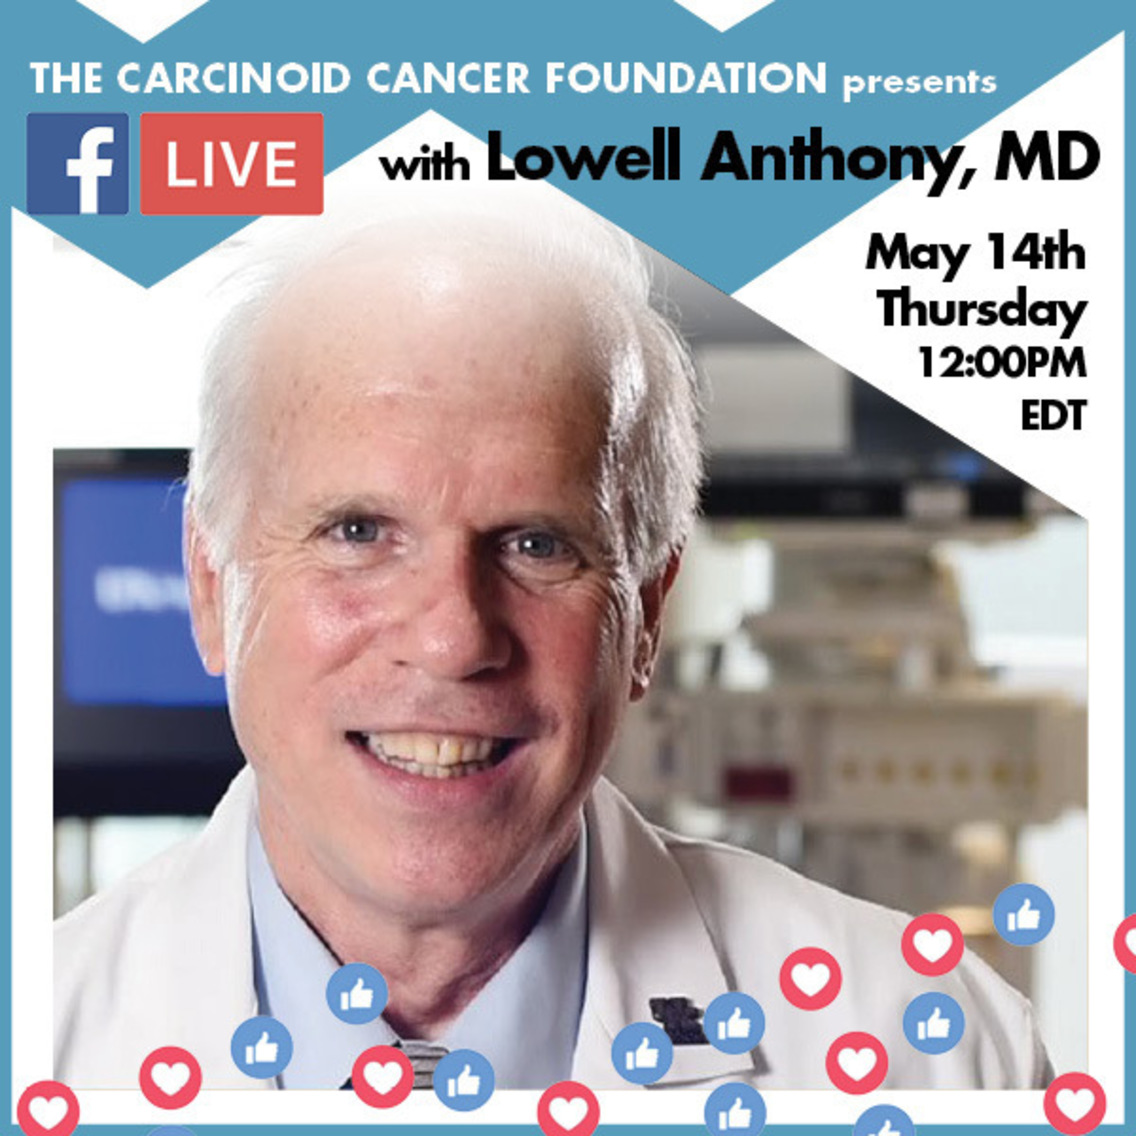 Facebook LIVE with Dr. Lowell Anthony